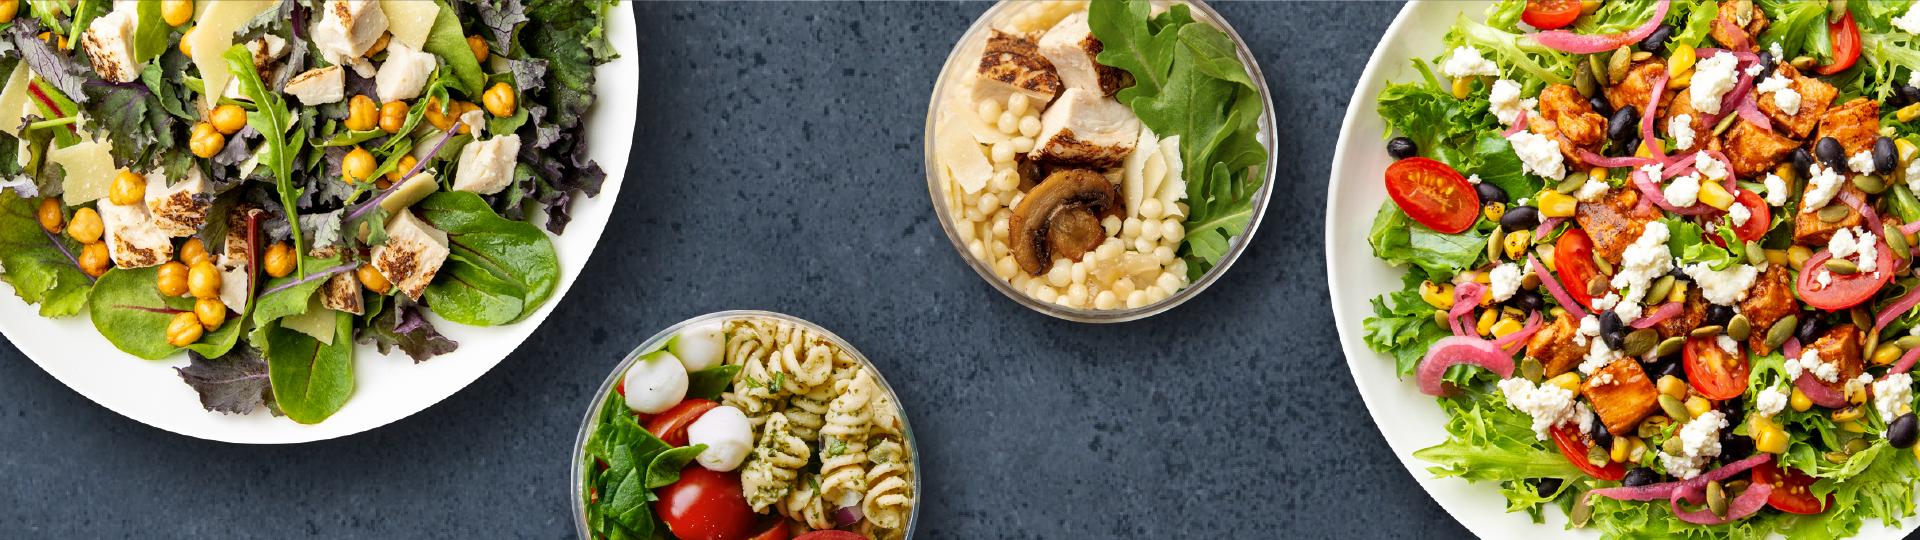 Top down image of bowls and salads